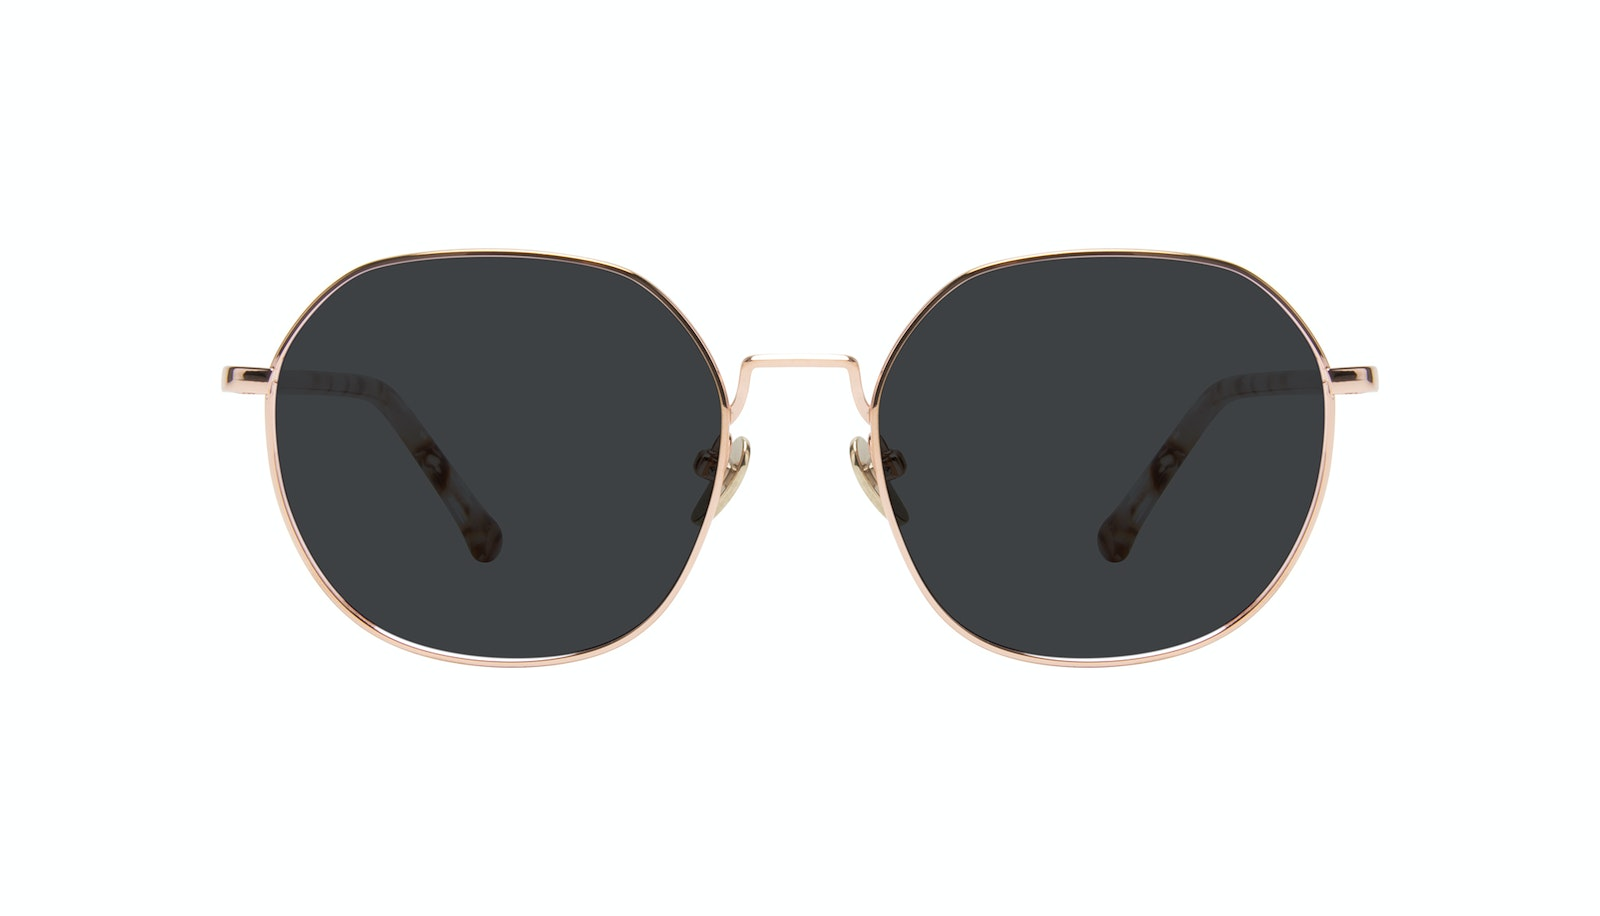 Affordable Fashion Glasses Round Sunglasses Women Coco Rose Gold